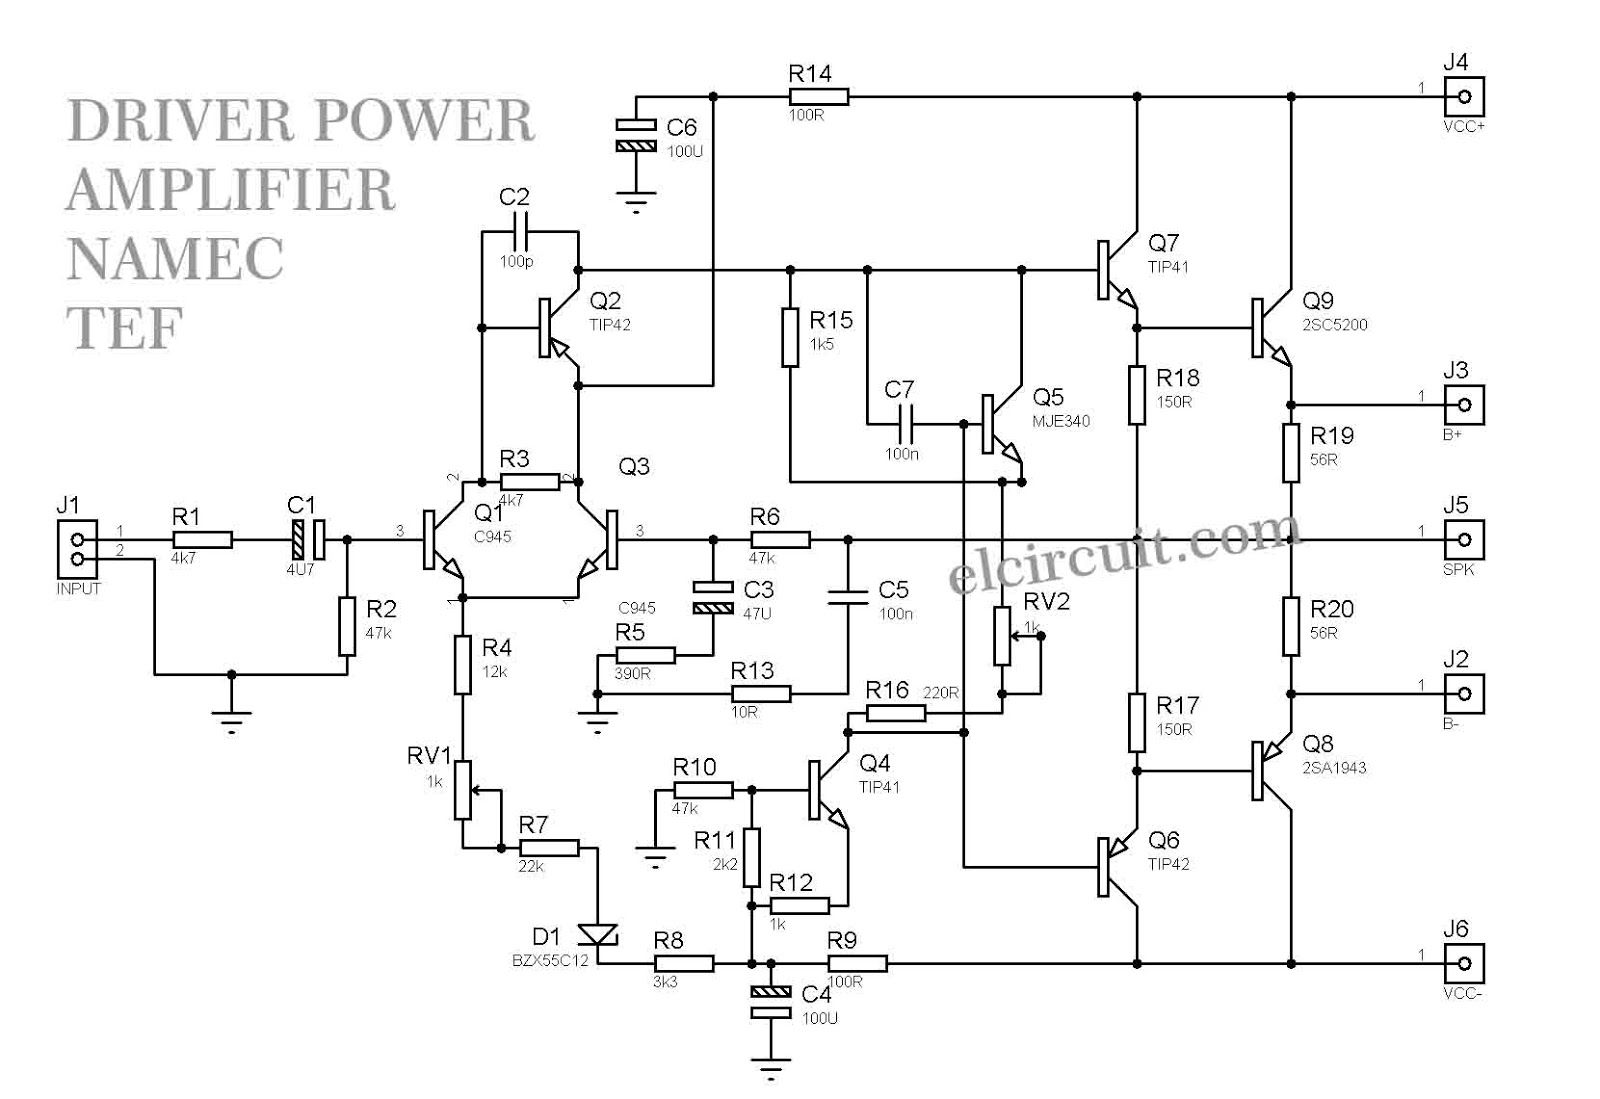 1000w driver power amplifier namec tef electronic circuit electronic circuit circuit diagram audio [ 1600 x 1099 Pixel ]